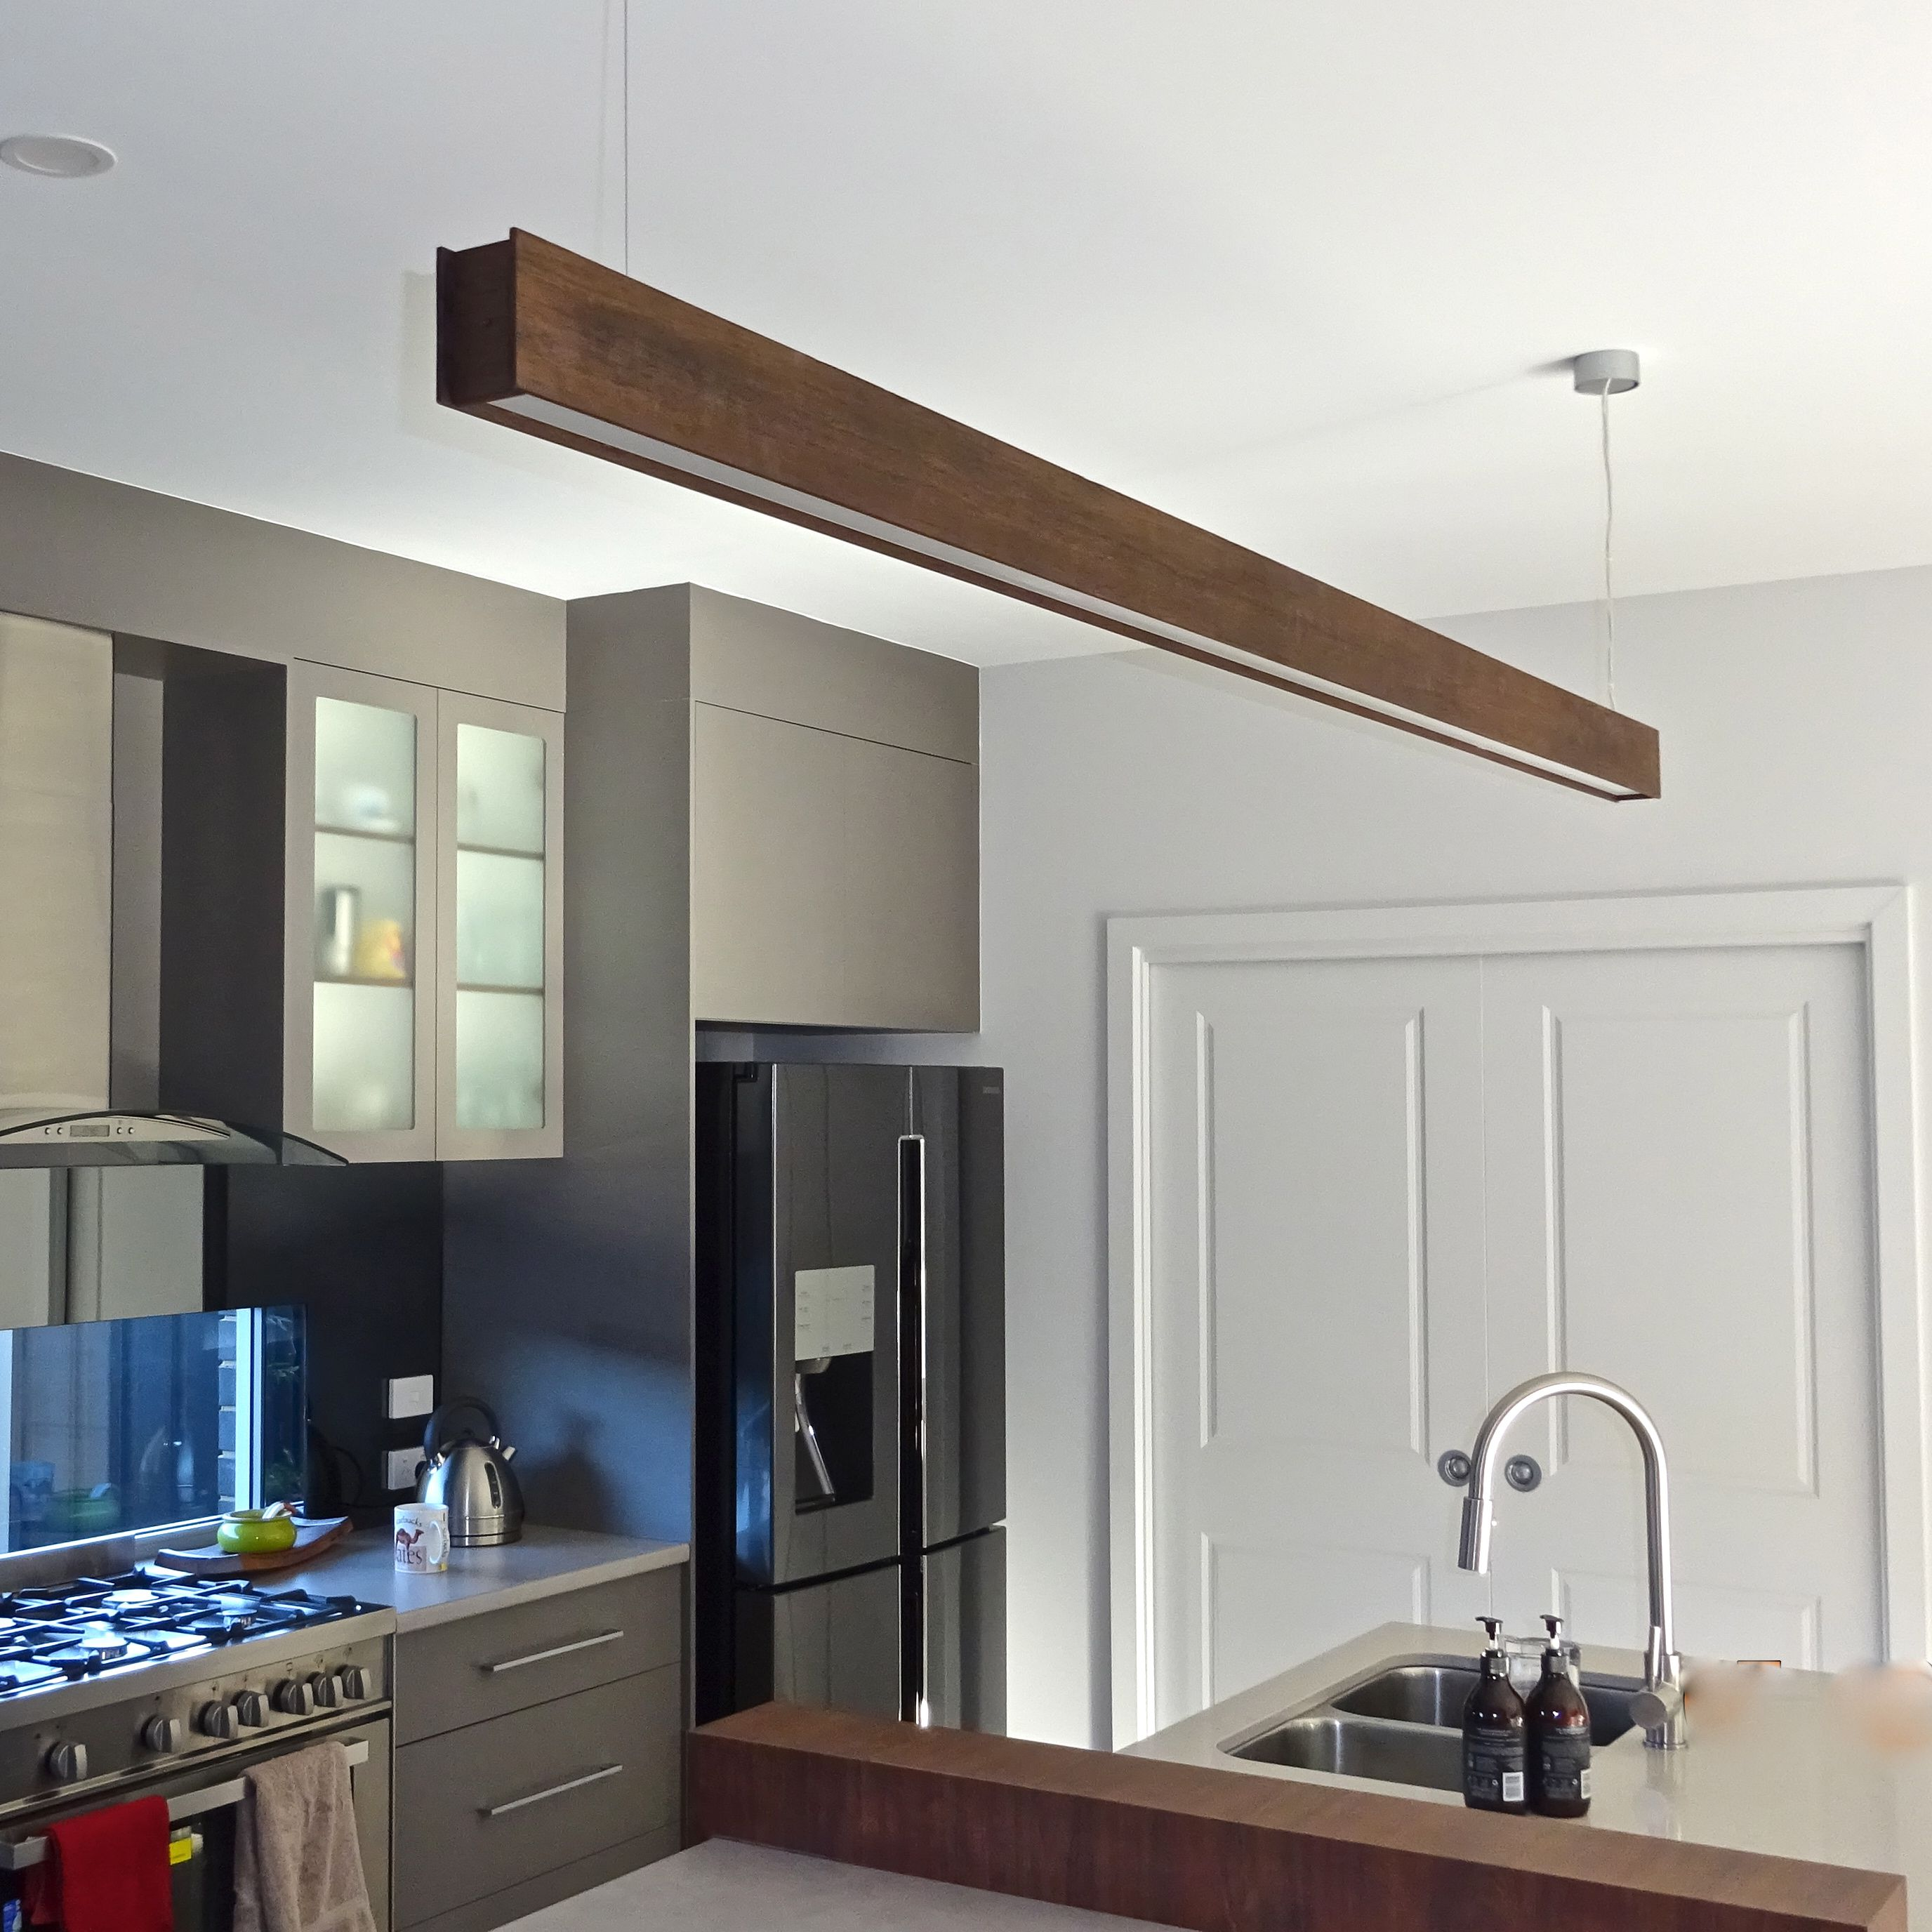 Image result for timber hanging strip lighting over kitchen bench